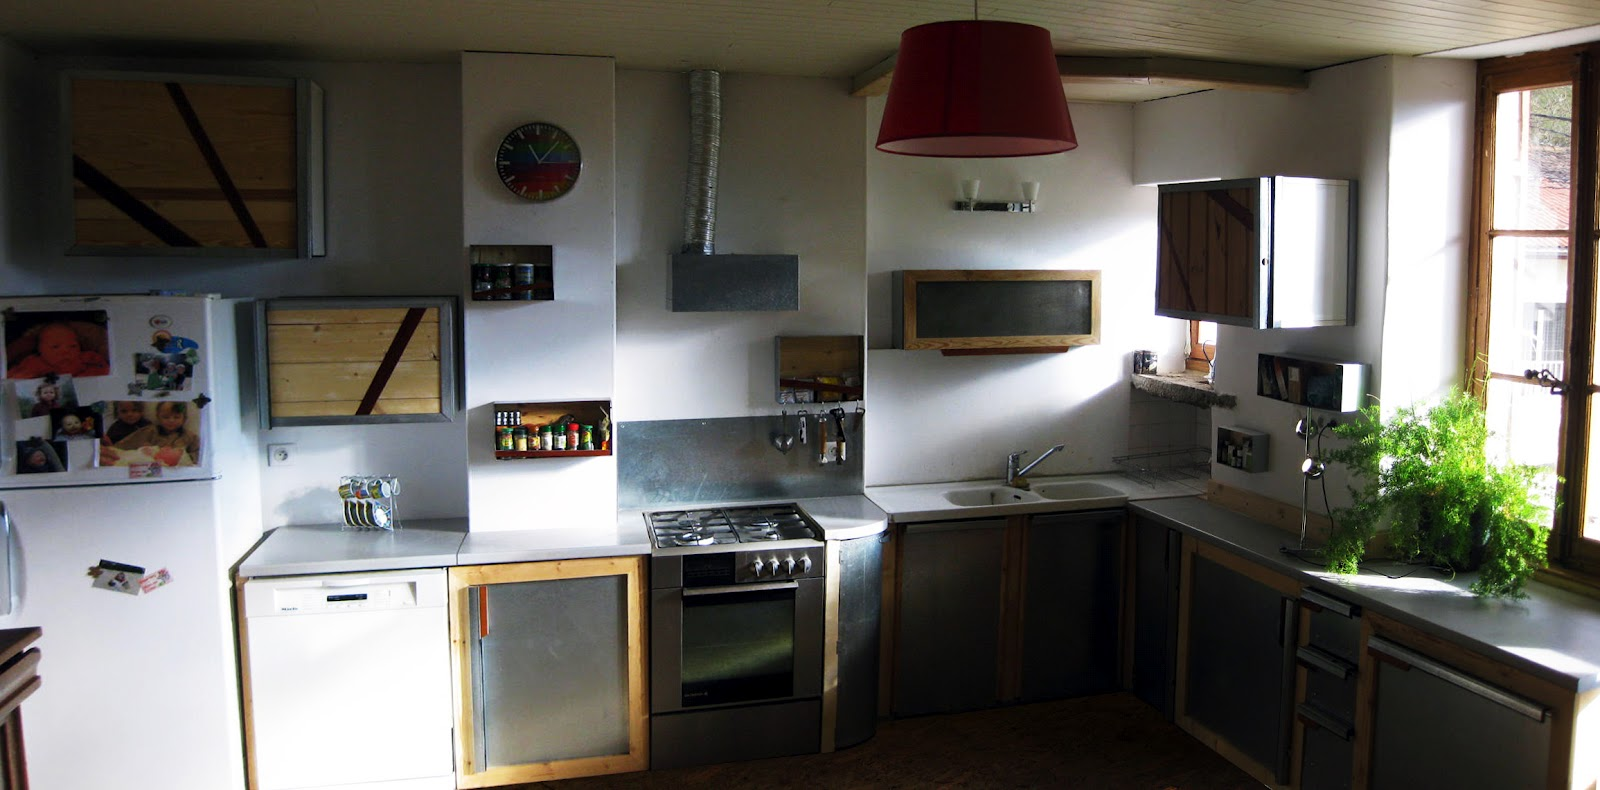 Esca cuisine am nagement int rieur for Amenagement interieur caisson cuisine